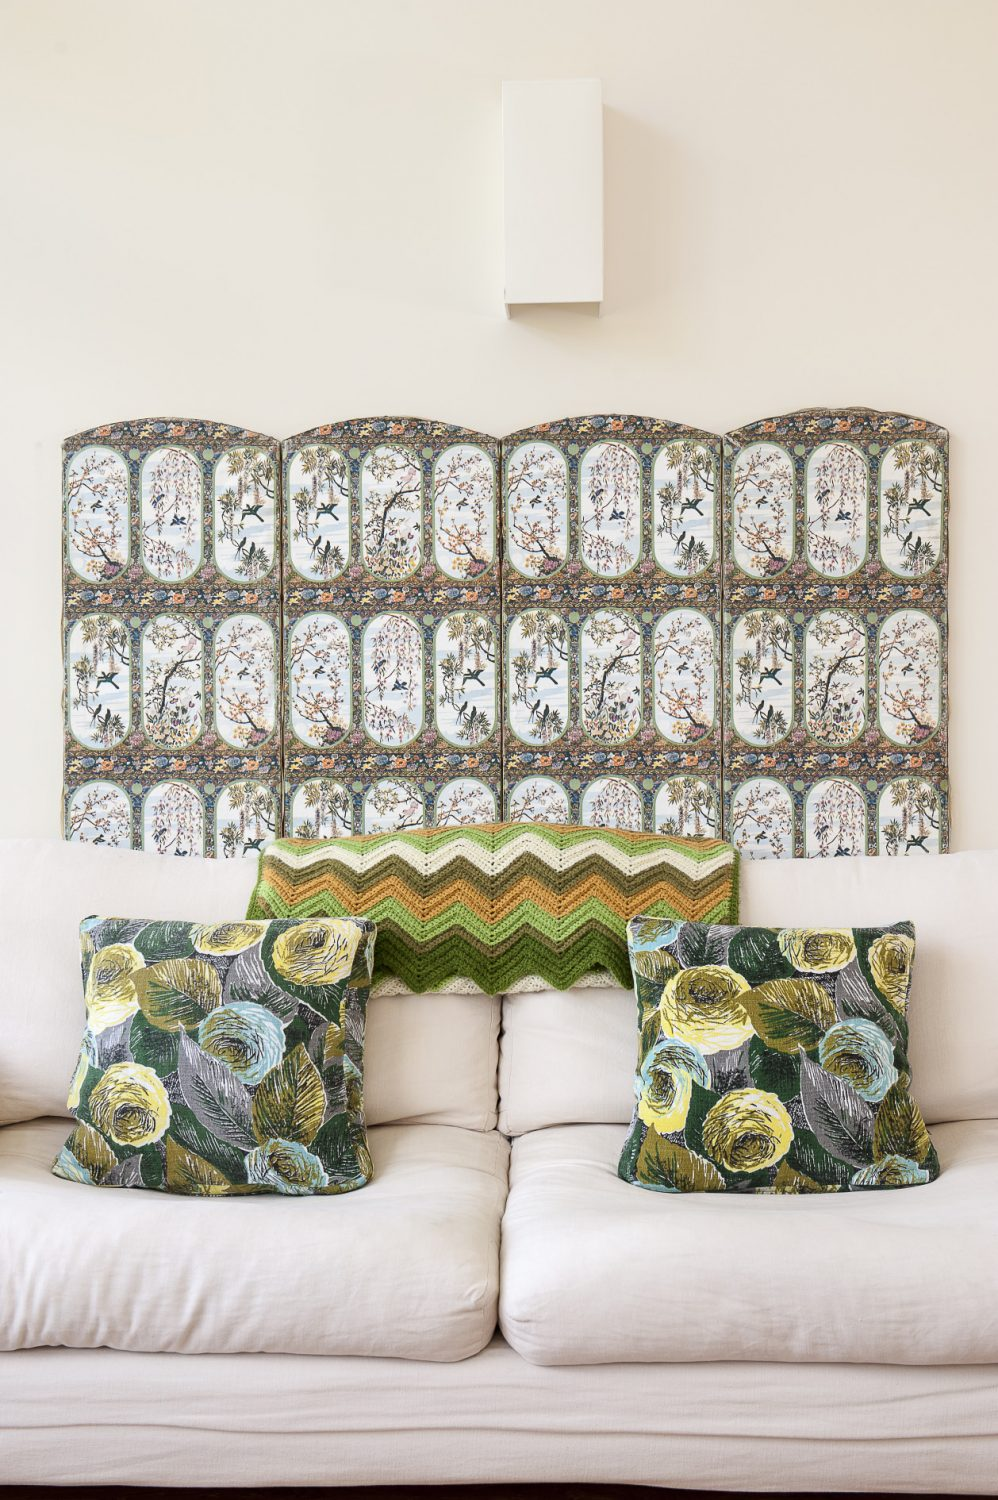 On the wall behind a pale cream sofa is a vintage French screen below which are cushions made by Jenny from bark cloth and old 1960s silk scarves